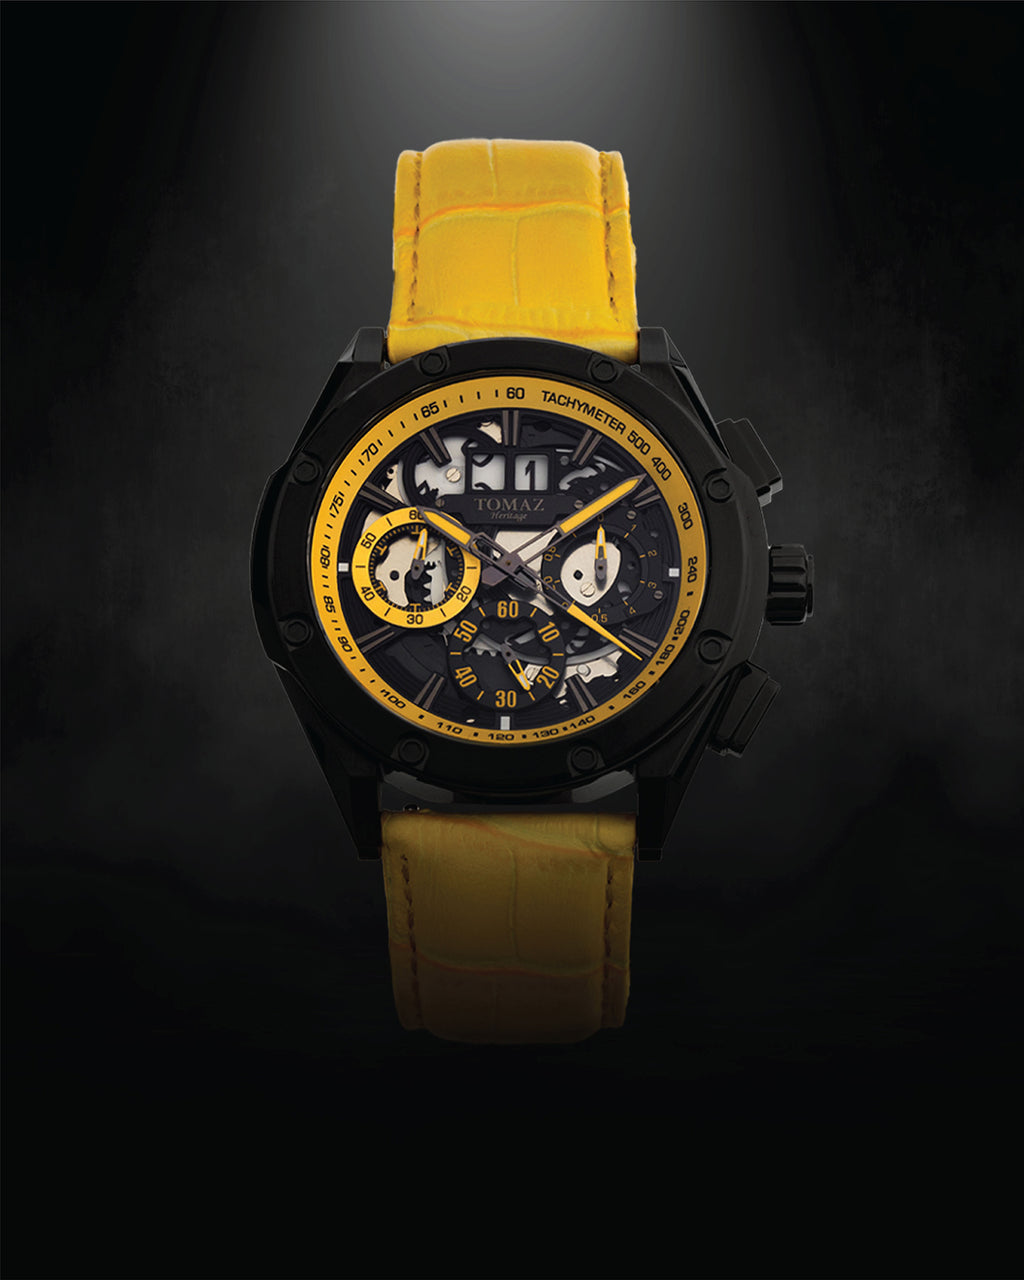 Tomaz Men's Watch RAWR III (Yellow) -TW024B-D2